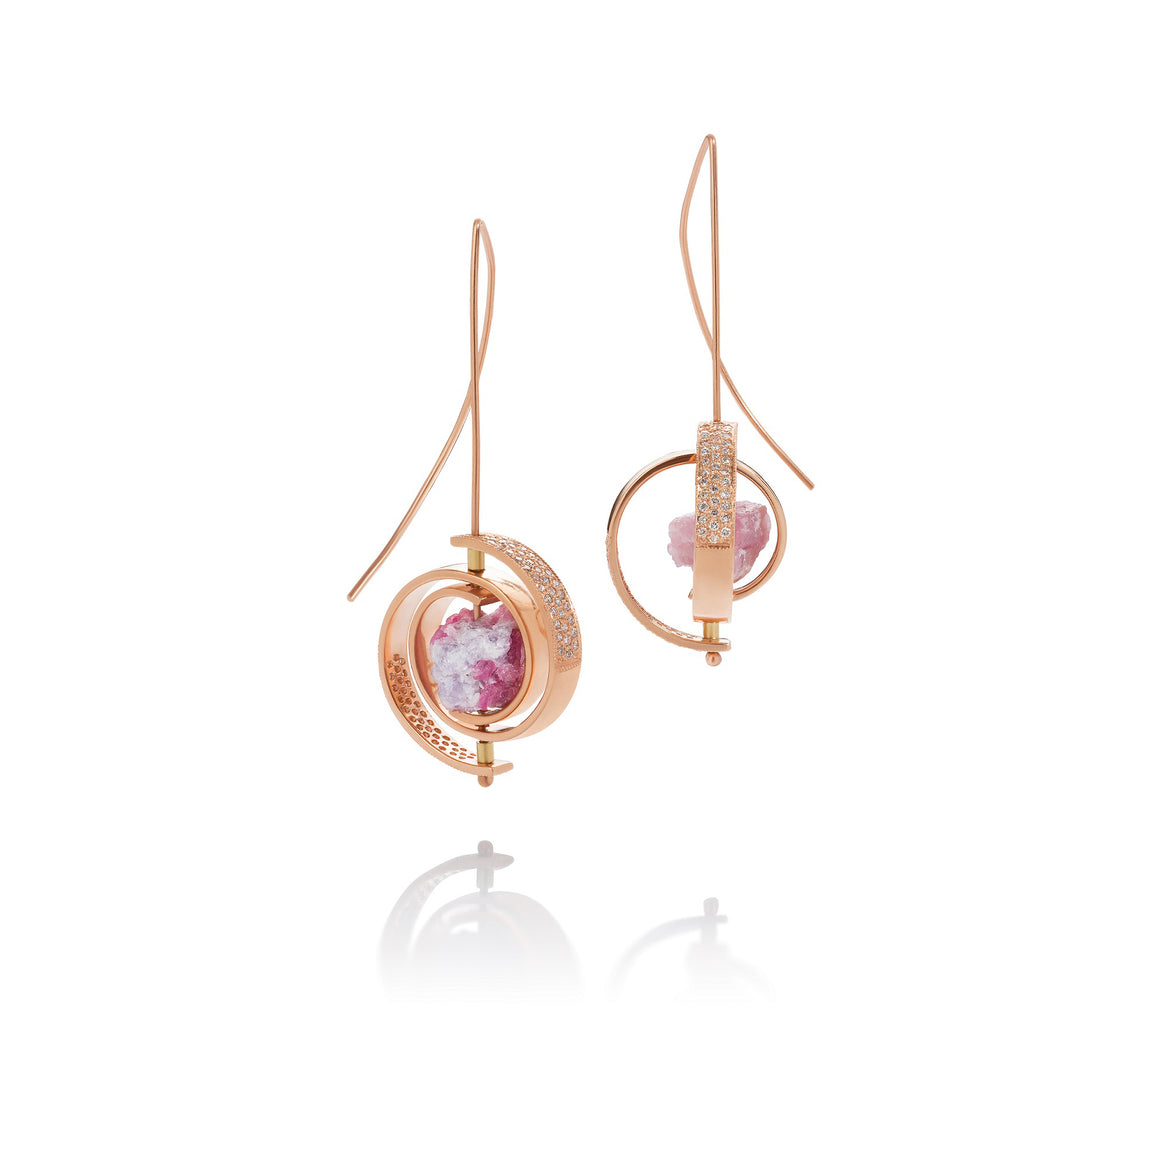 Martha Seely Ceres Spiral Pink Tourmaline Earrings